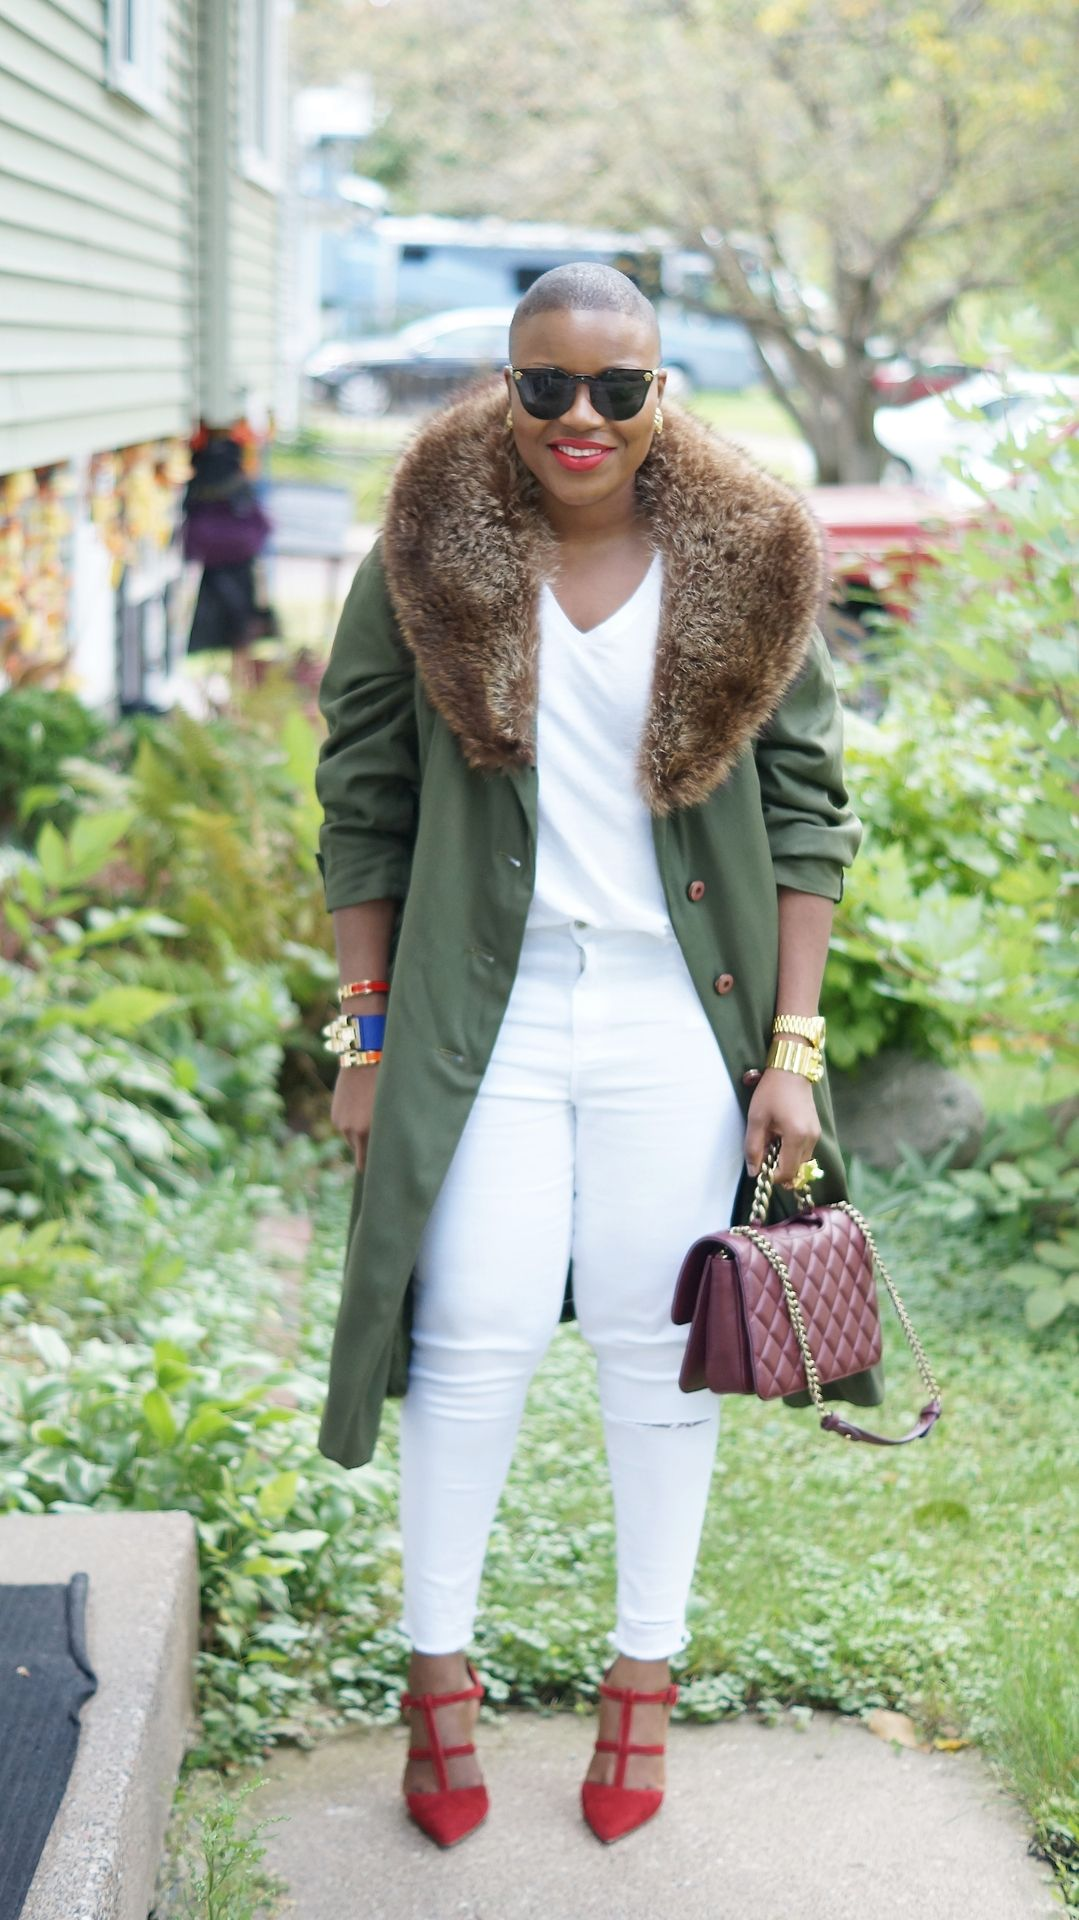 A Style Enthused Young Woman